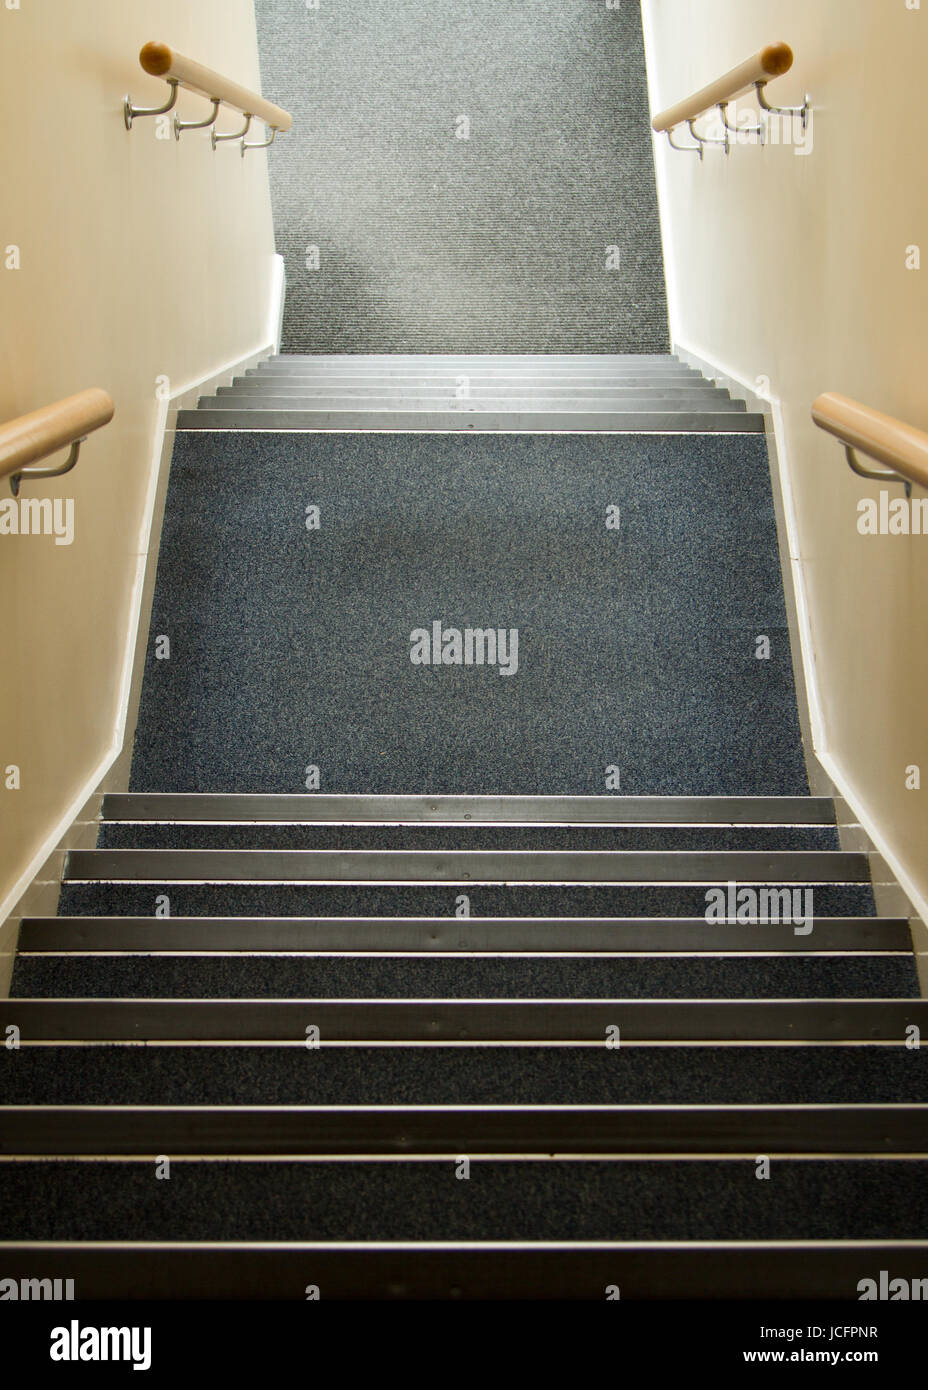 Stairway going down in office block with hand rails and  blue carpet tiles, no trip hazards and no safety gates - Stock Image